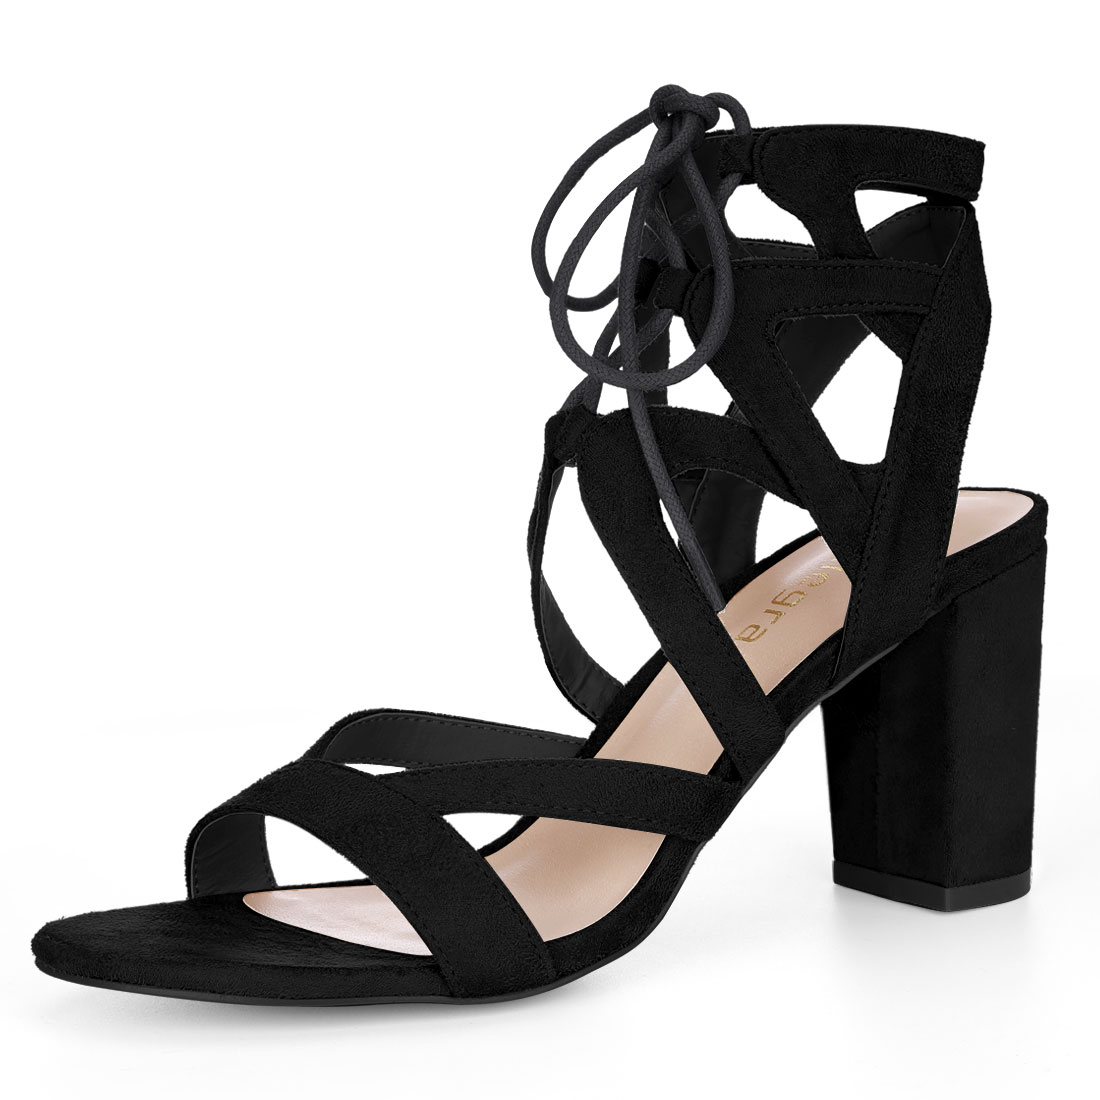 Allegra K Women Cutout Strappy Chunky Heel Lace-Up Sandals Black US 8.5